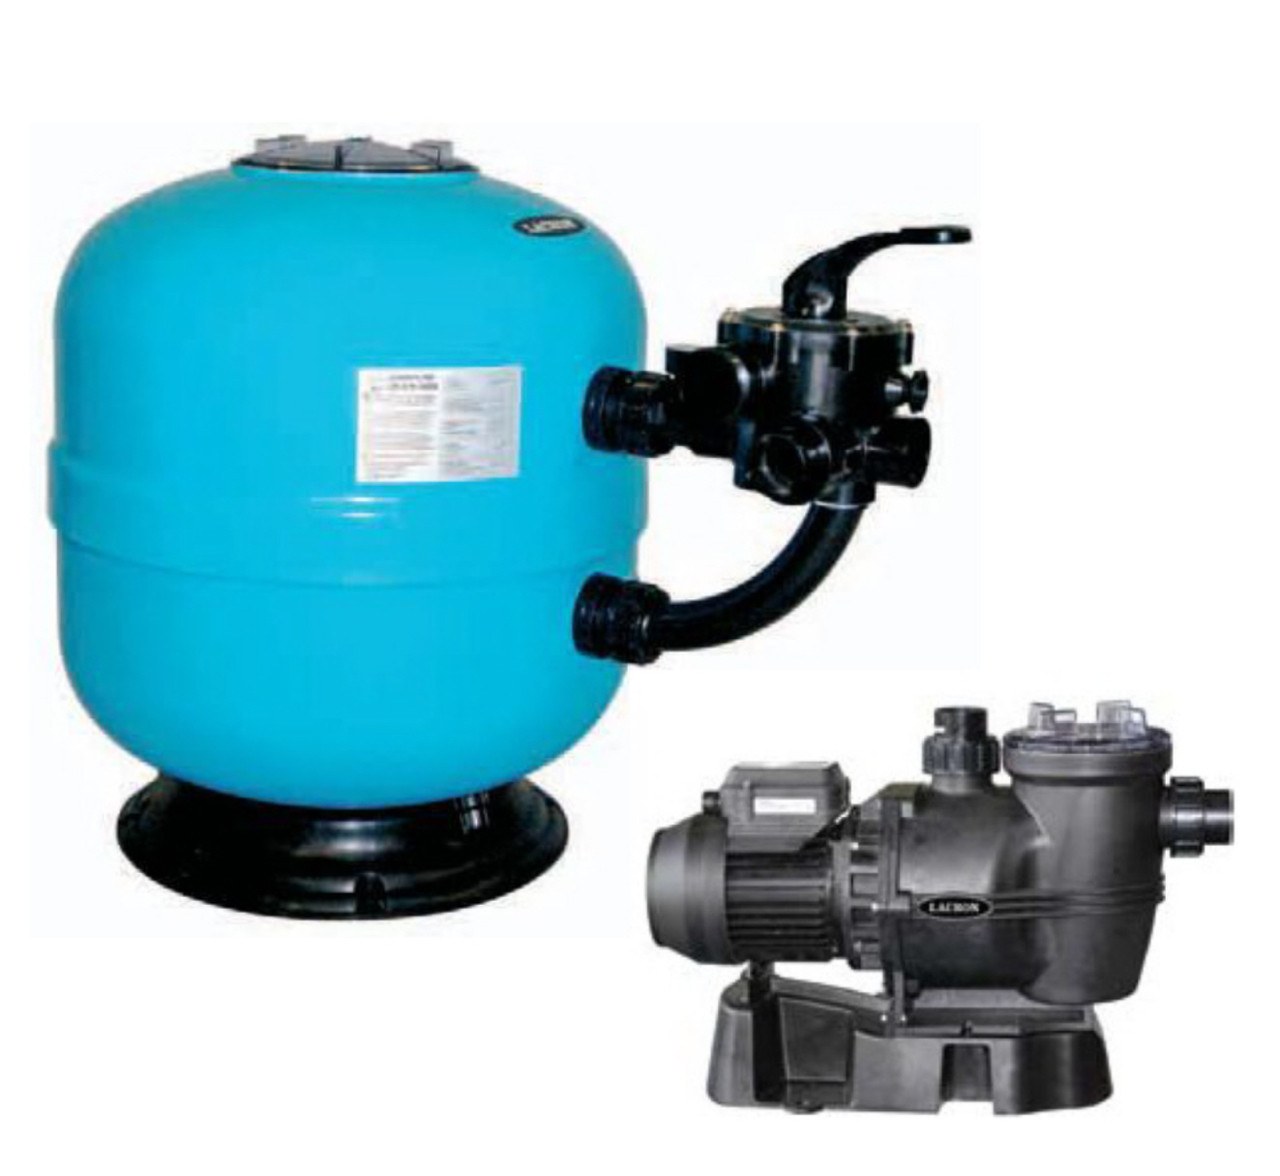 Lacron Filter And Lacronite Pump Package Oasis Pool Products